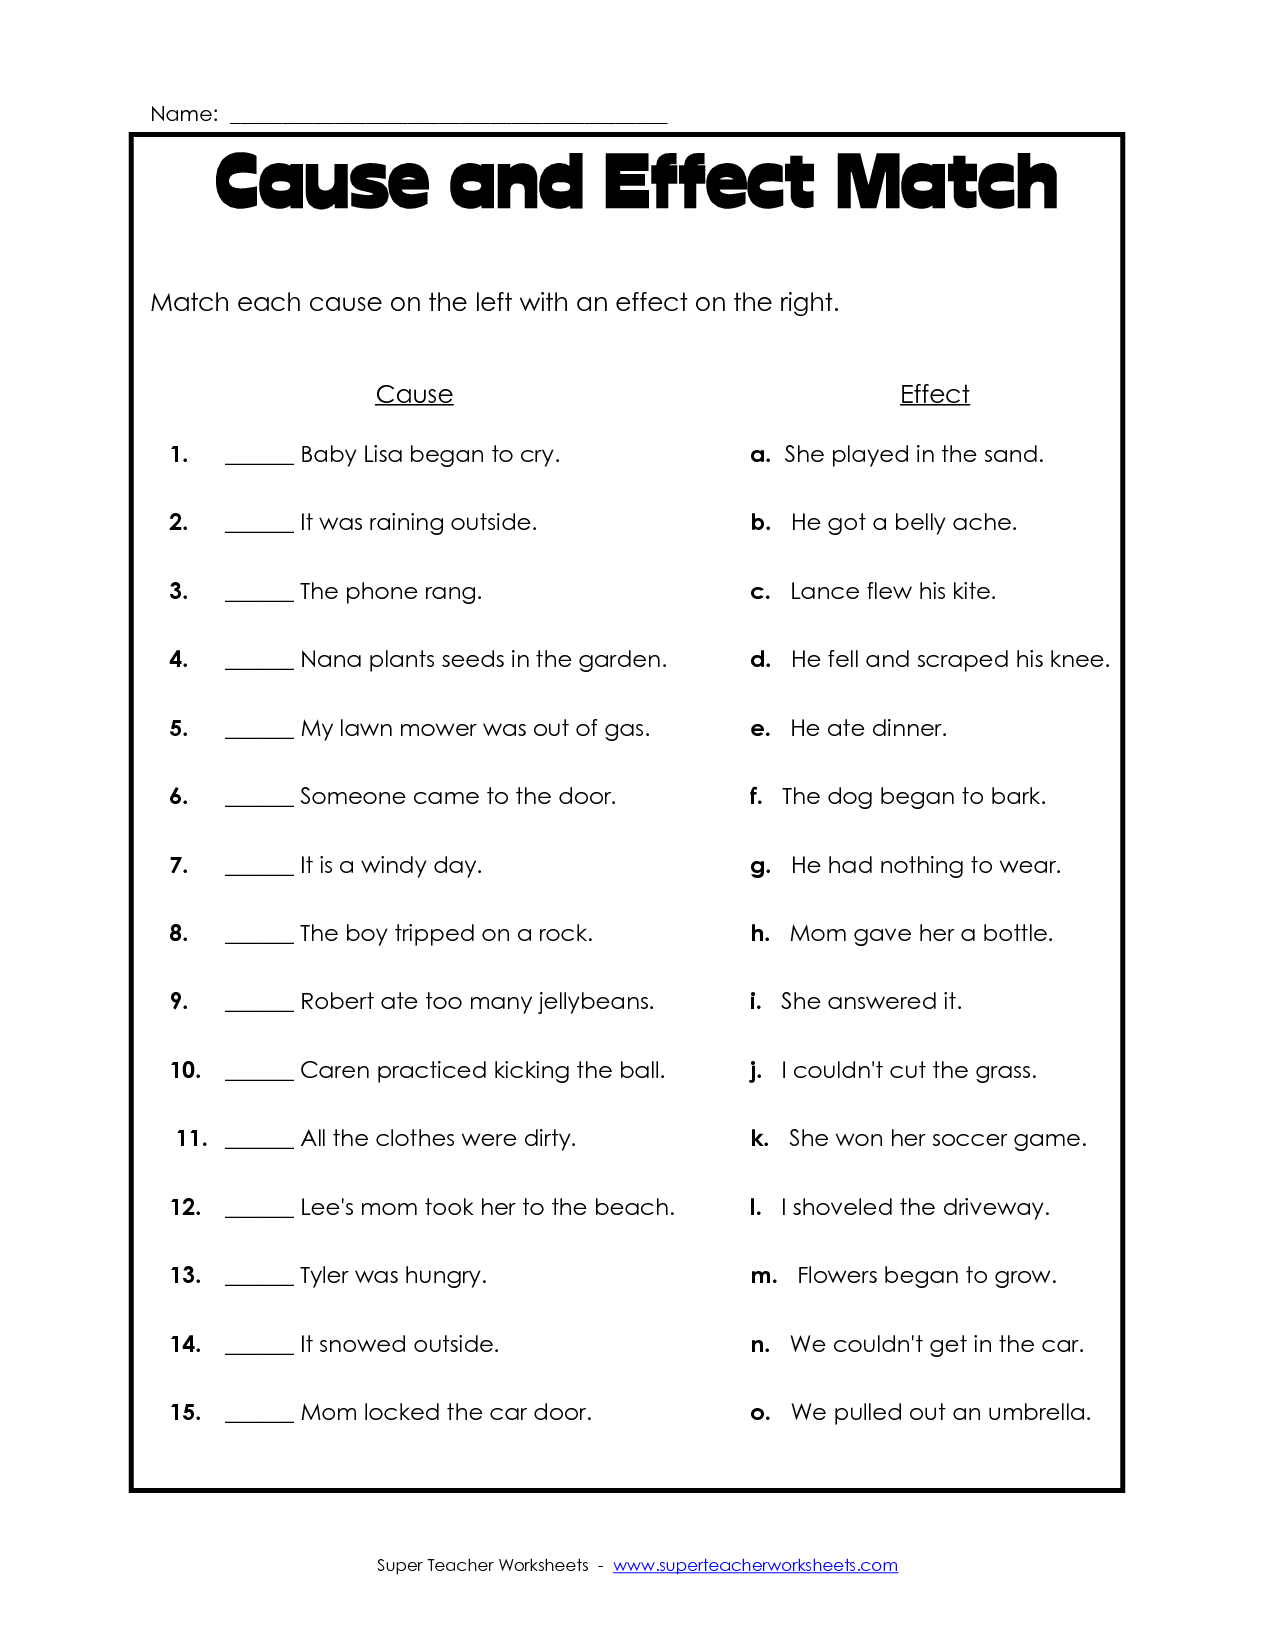 Cause And Effect Template Worksheets Cause And Effect Worksheets 4th Grade Reading Worksheets Social Studies Worksheets Reading Comprehension Worksheets